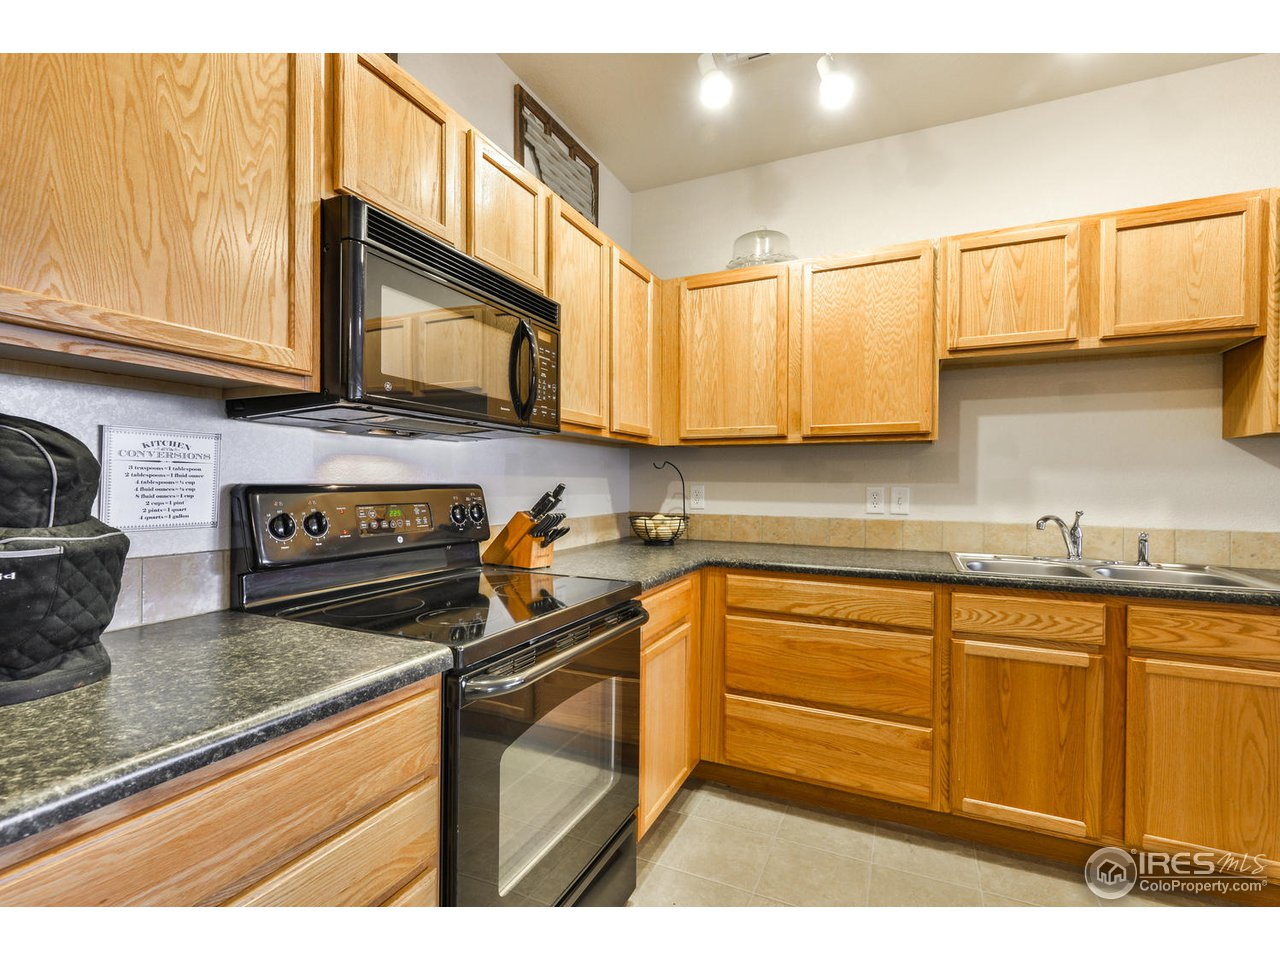 4672 W 20th St Rd 1125 Greeley Co 80634 Greeley Sold Listing Mls 868169 Pink Realty